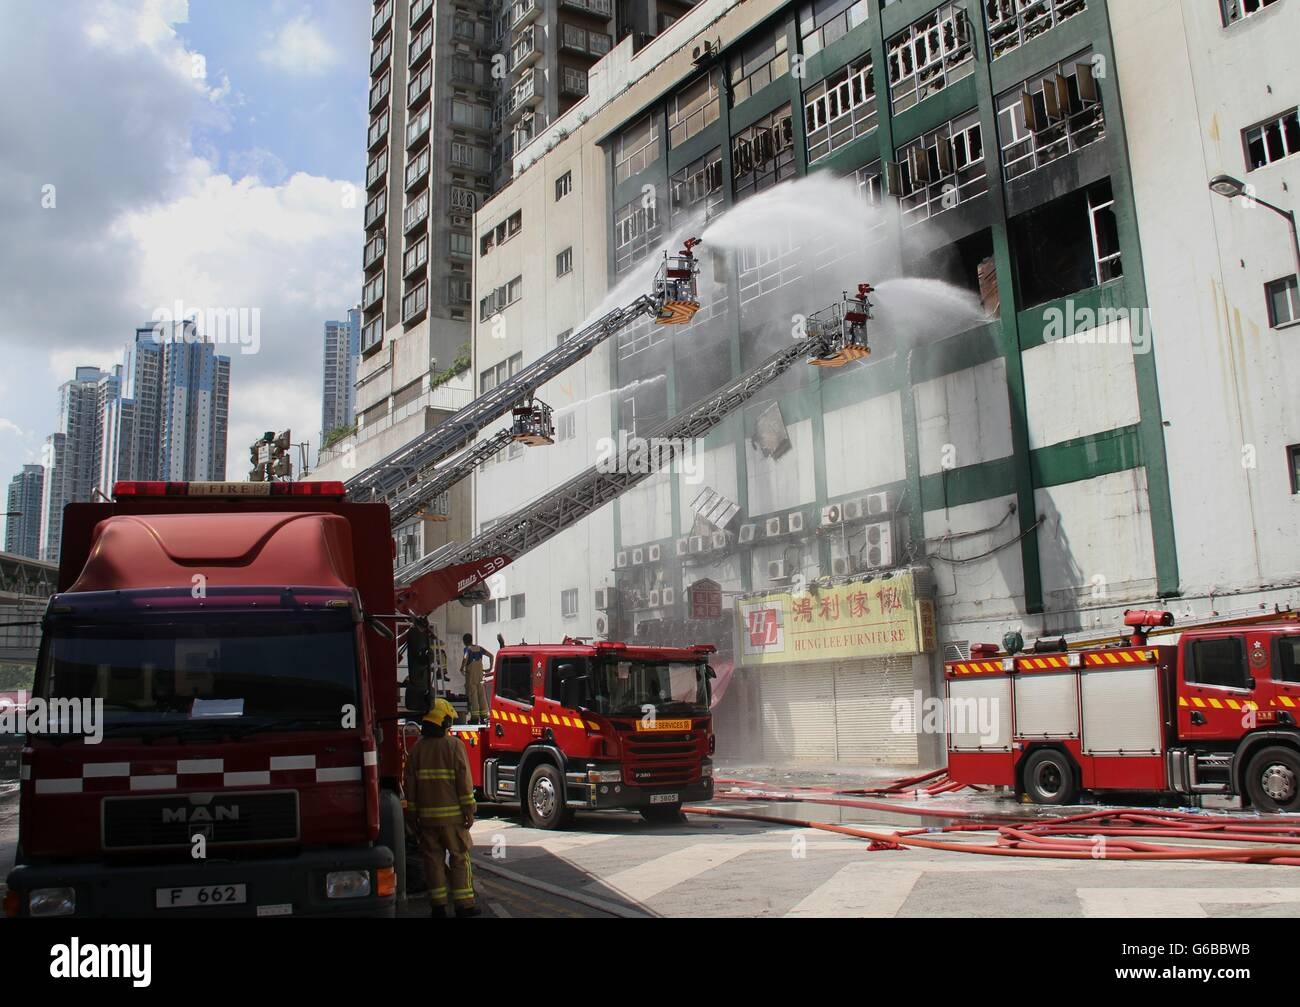 Hong Kong, China. 24th June, 2016. Firefighters put out fire at a multi-storey industrial building in East Kowloon - Stock Image